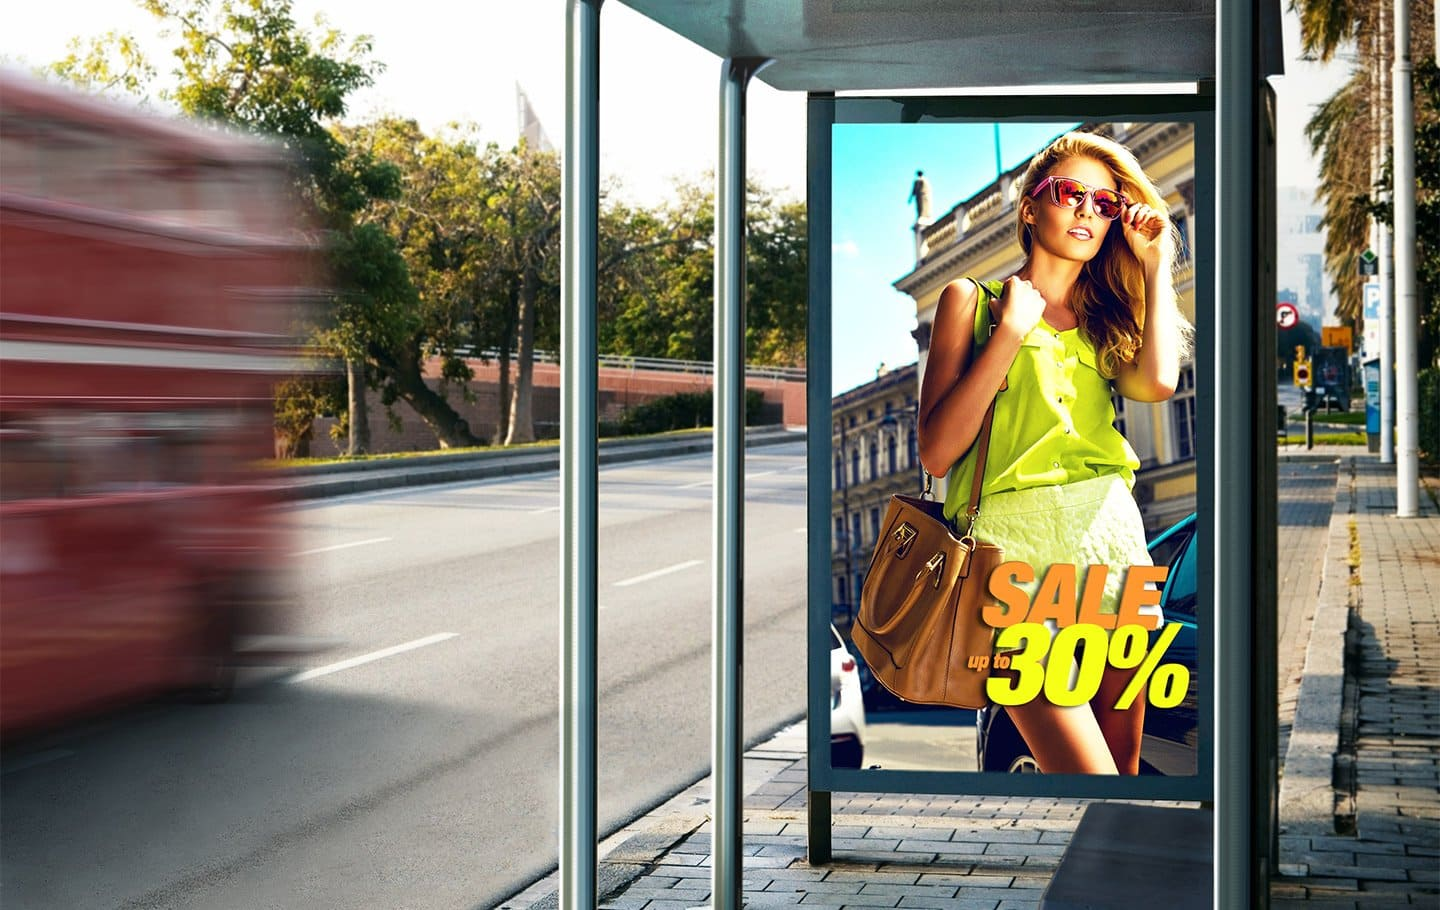 Large displays optimized for DOOH